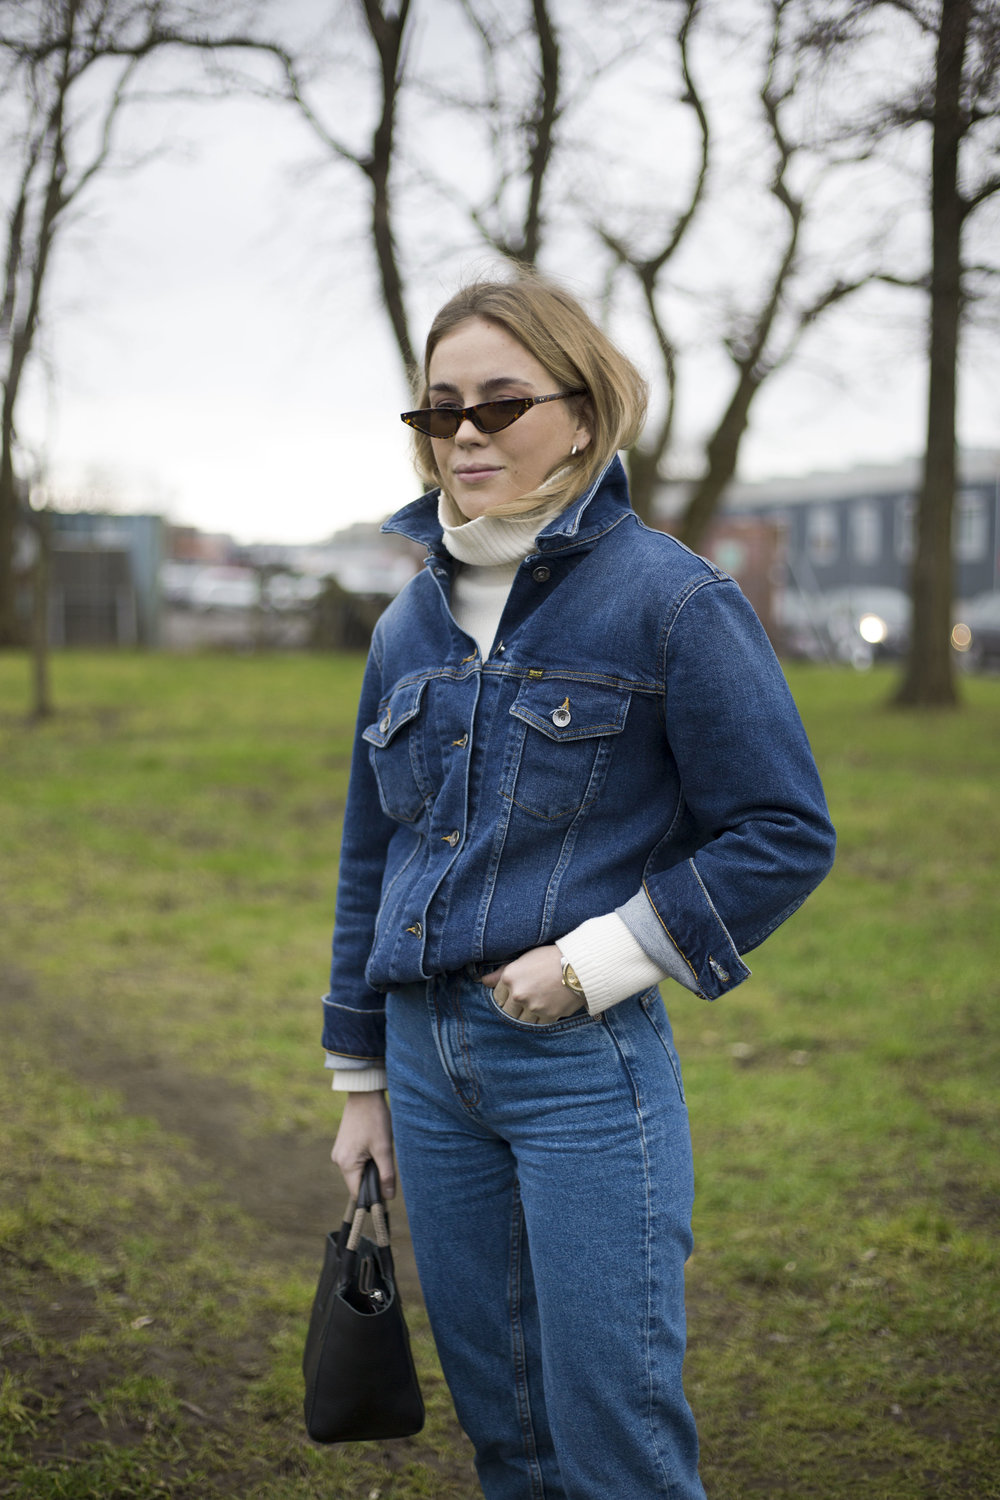 matrix-grasses-denim-thestreetland-streetstyle-scandinavia-copenhagen-fashion-week-aw18-Street-Style-Fashion-Photography